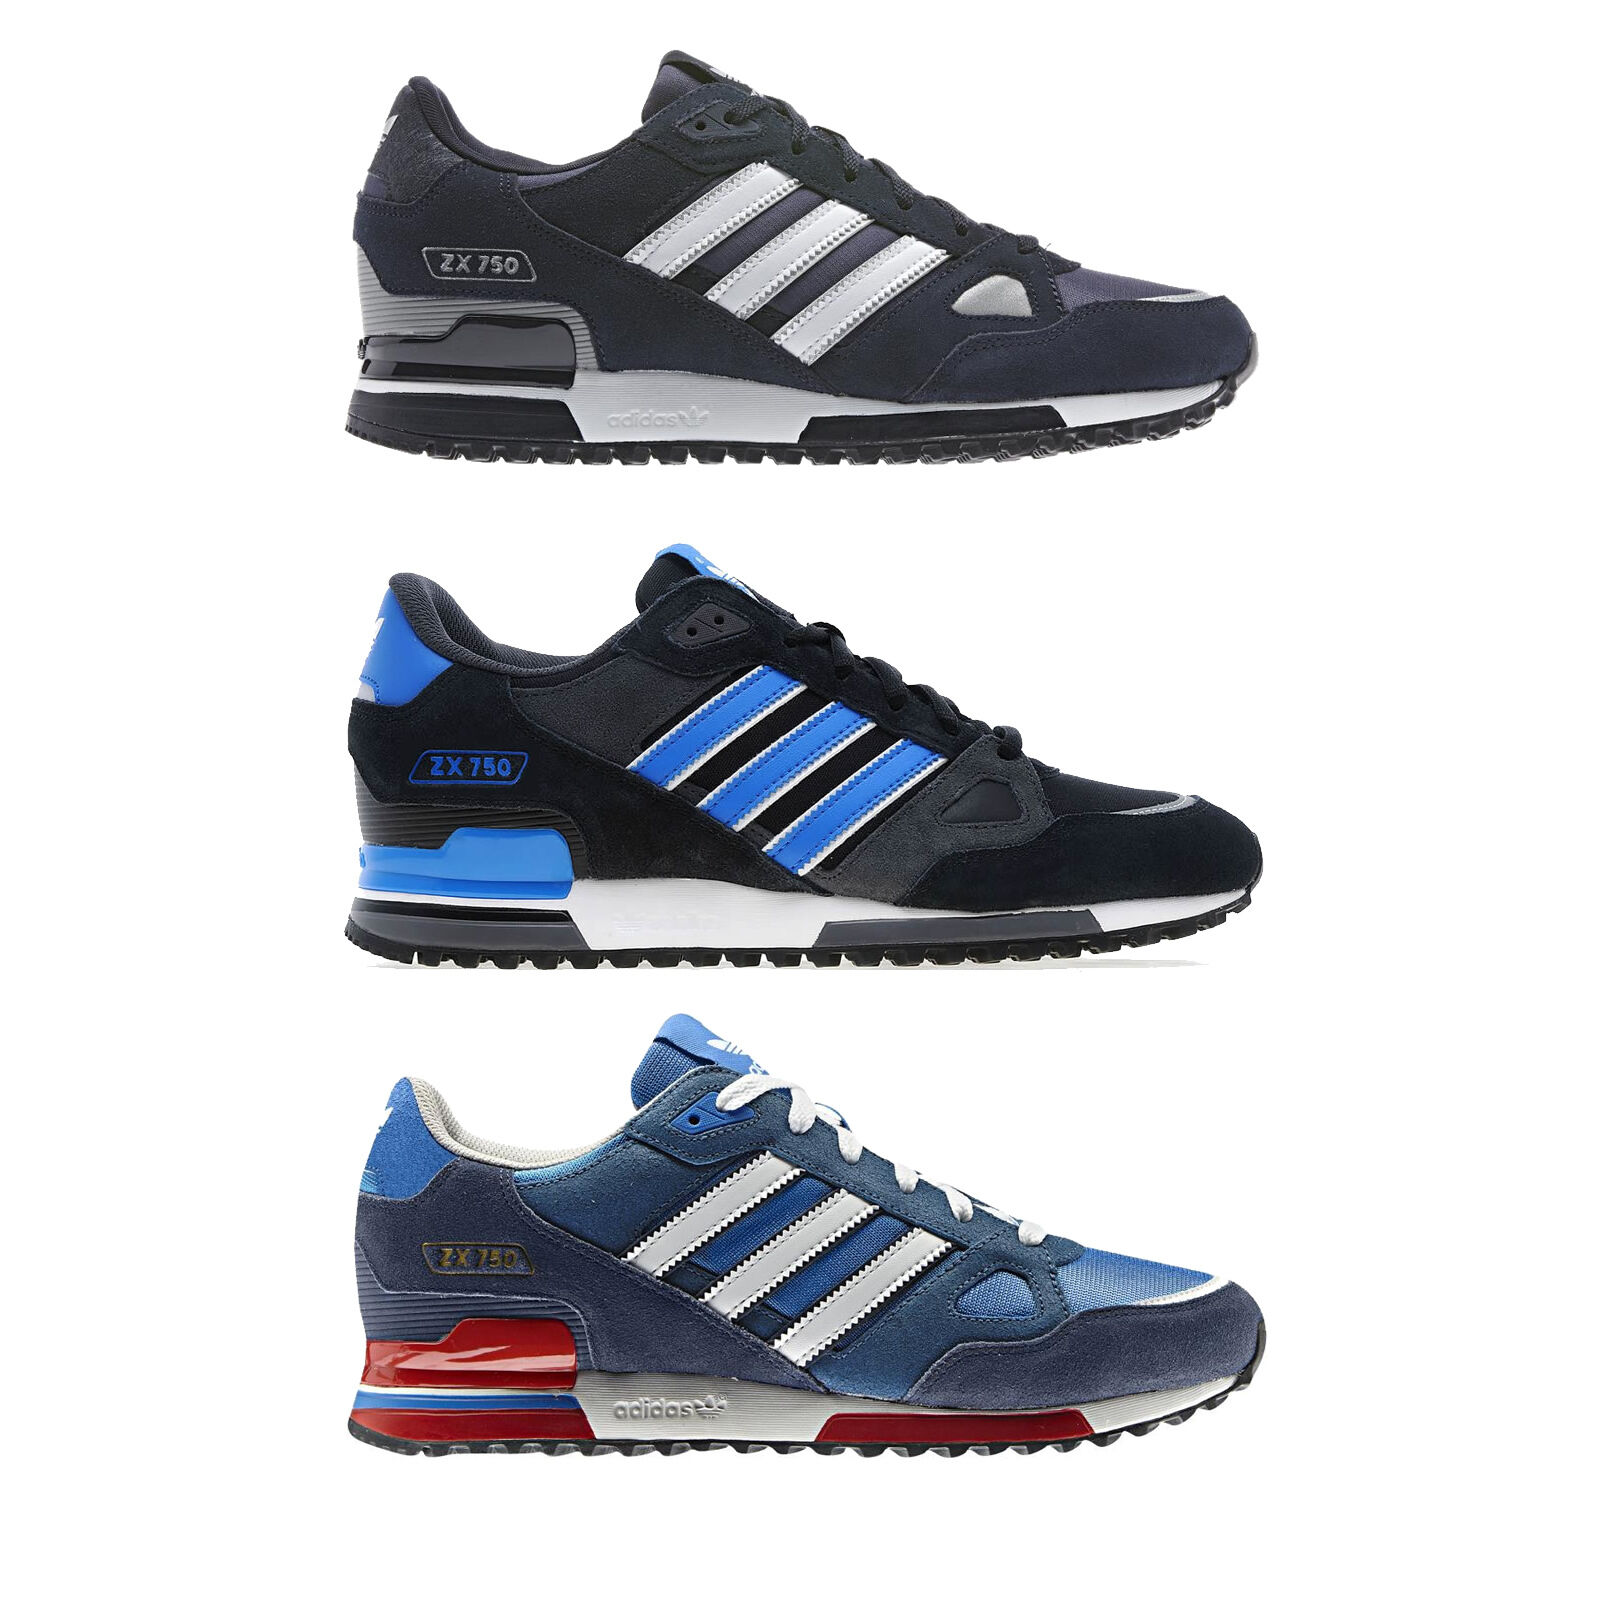 ADIDAS ORIGINALS ZX 750 SIZE 7-12 BLACK BLUE MENS TRAINERS SHOES RUNNING  SPORT cce95fc8f